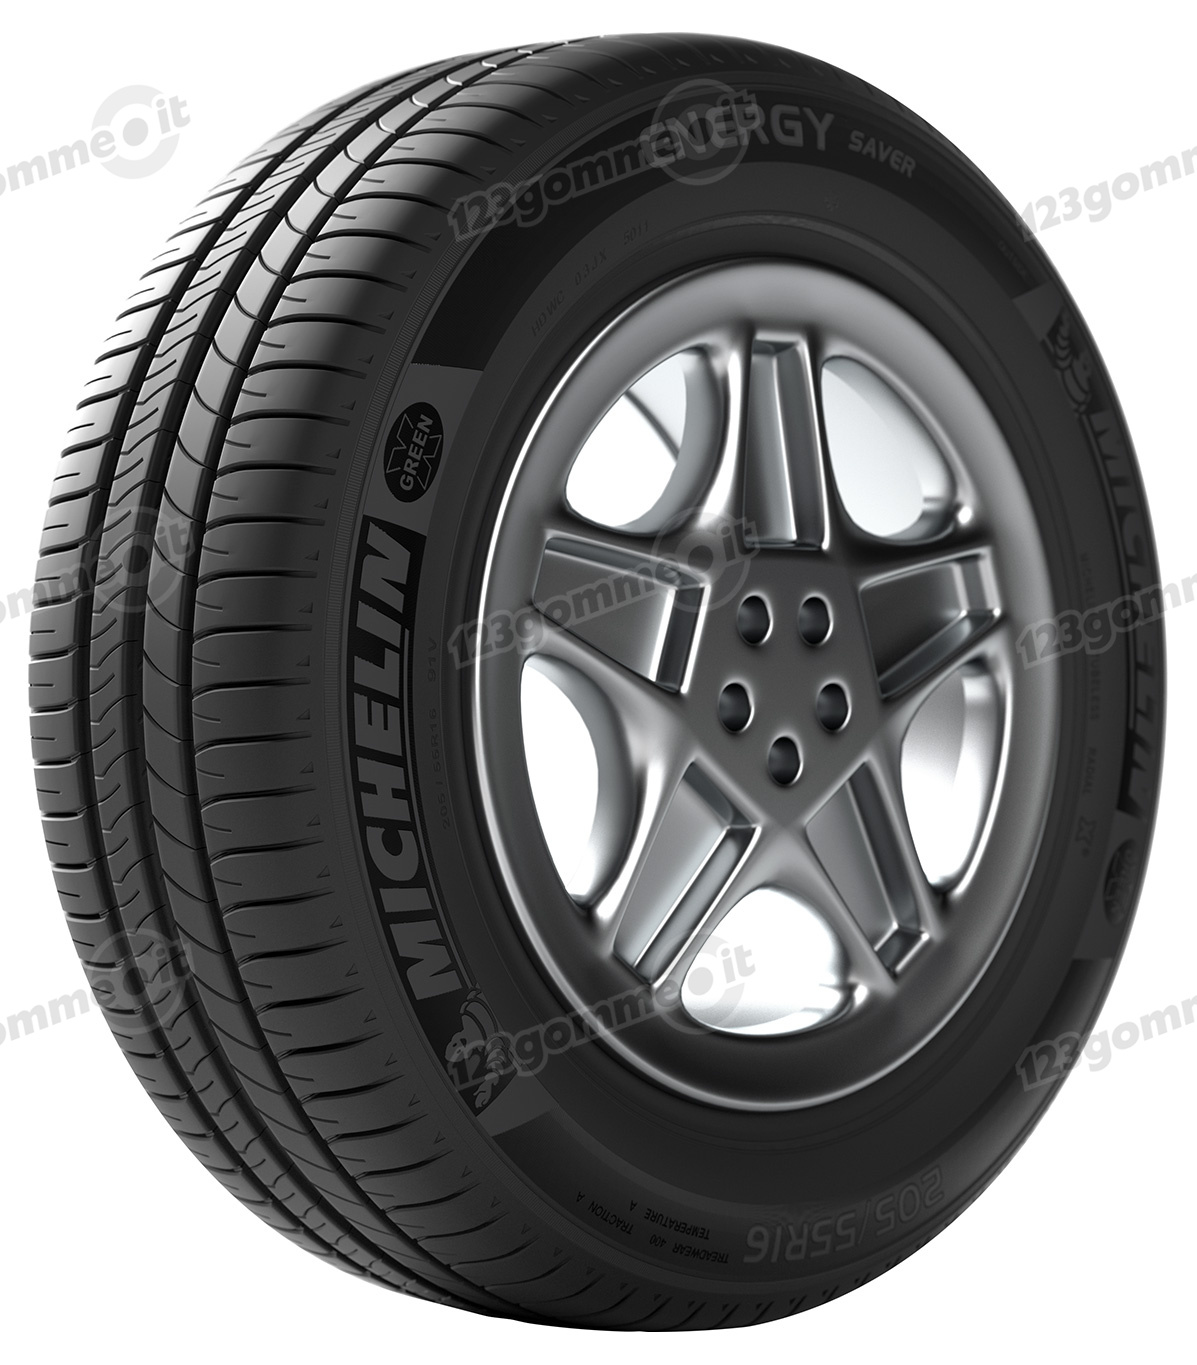 205/60 R16 96V Energy Saver + EL  Energy Saver + EL